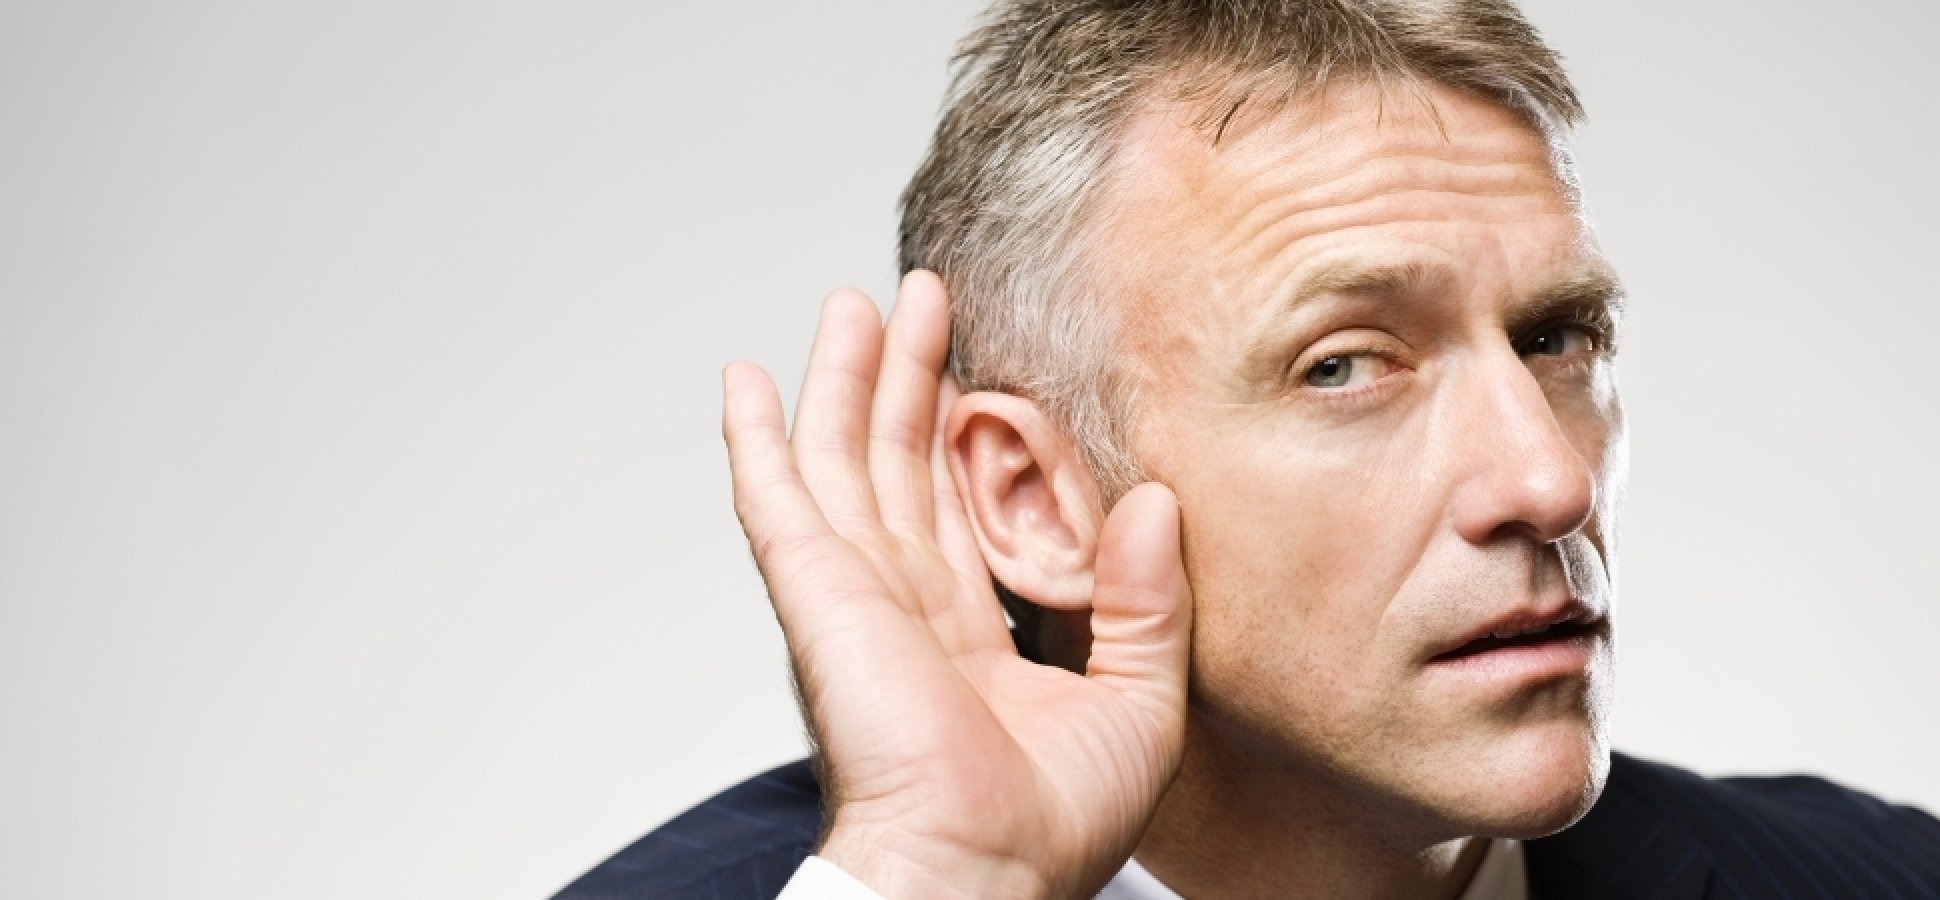 Inc.: Why the Best Leaders Always Listen First